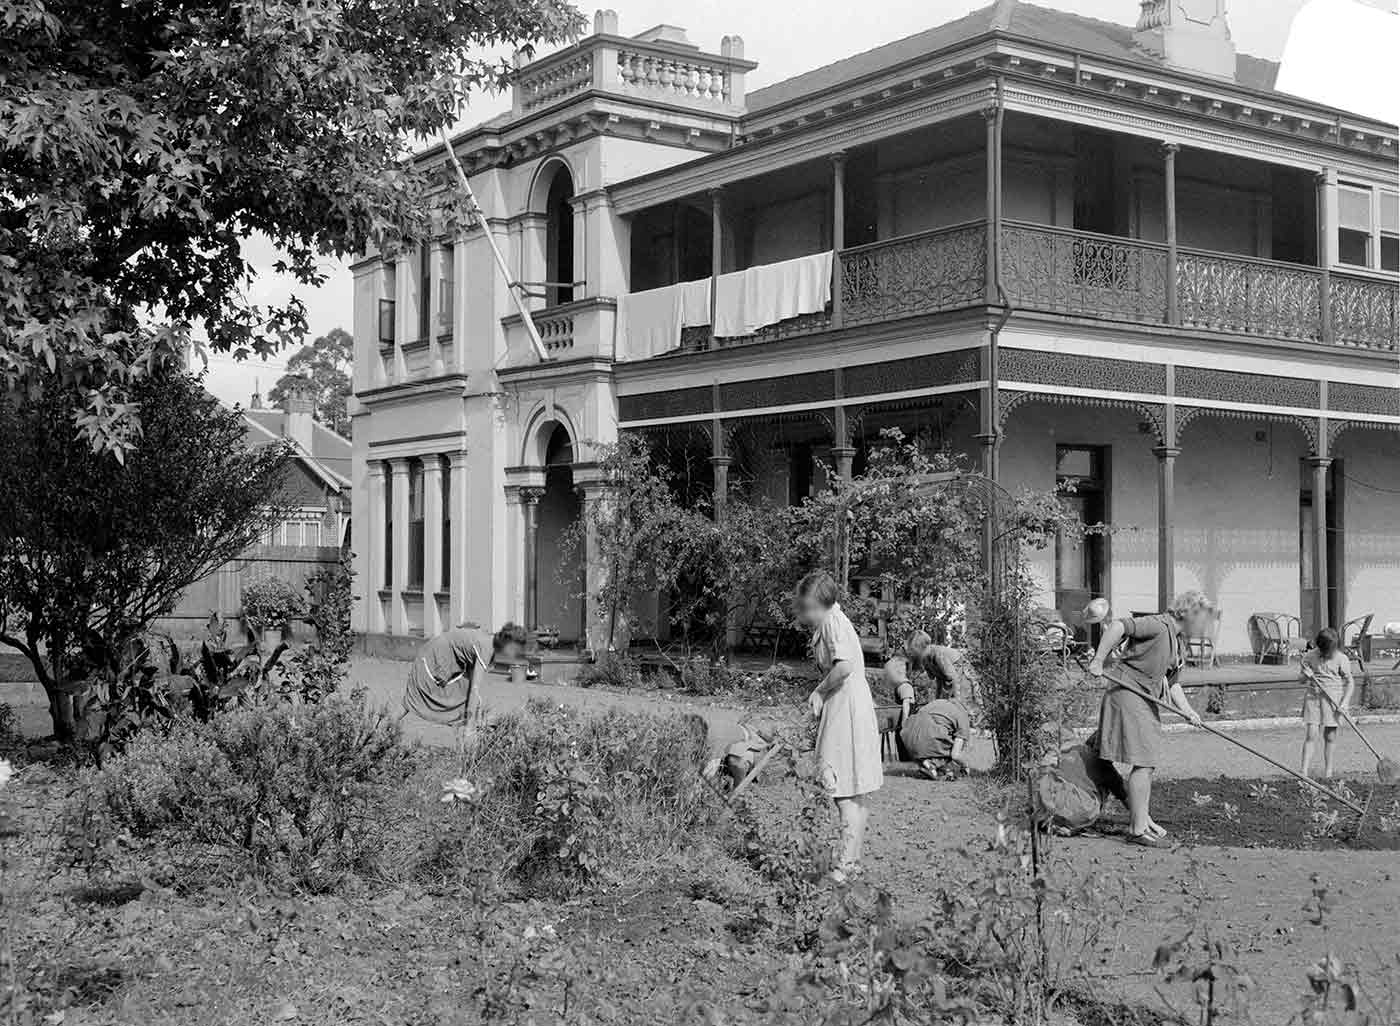 Black and white photo of a group of teenage girls at work in a garden outside a two-storey home. The girls use various tools to tend vegetable and ornamental garden beds. - click to view larger image